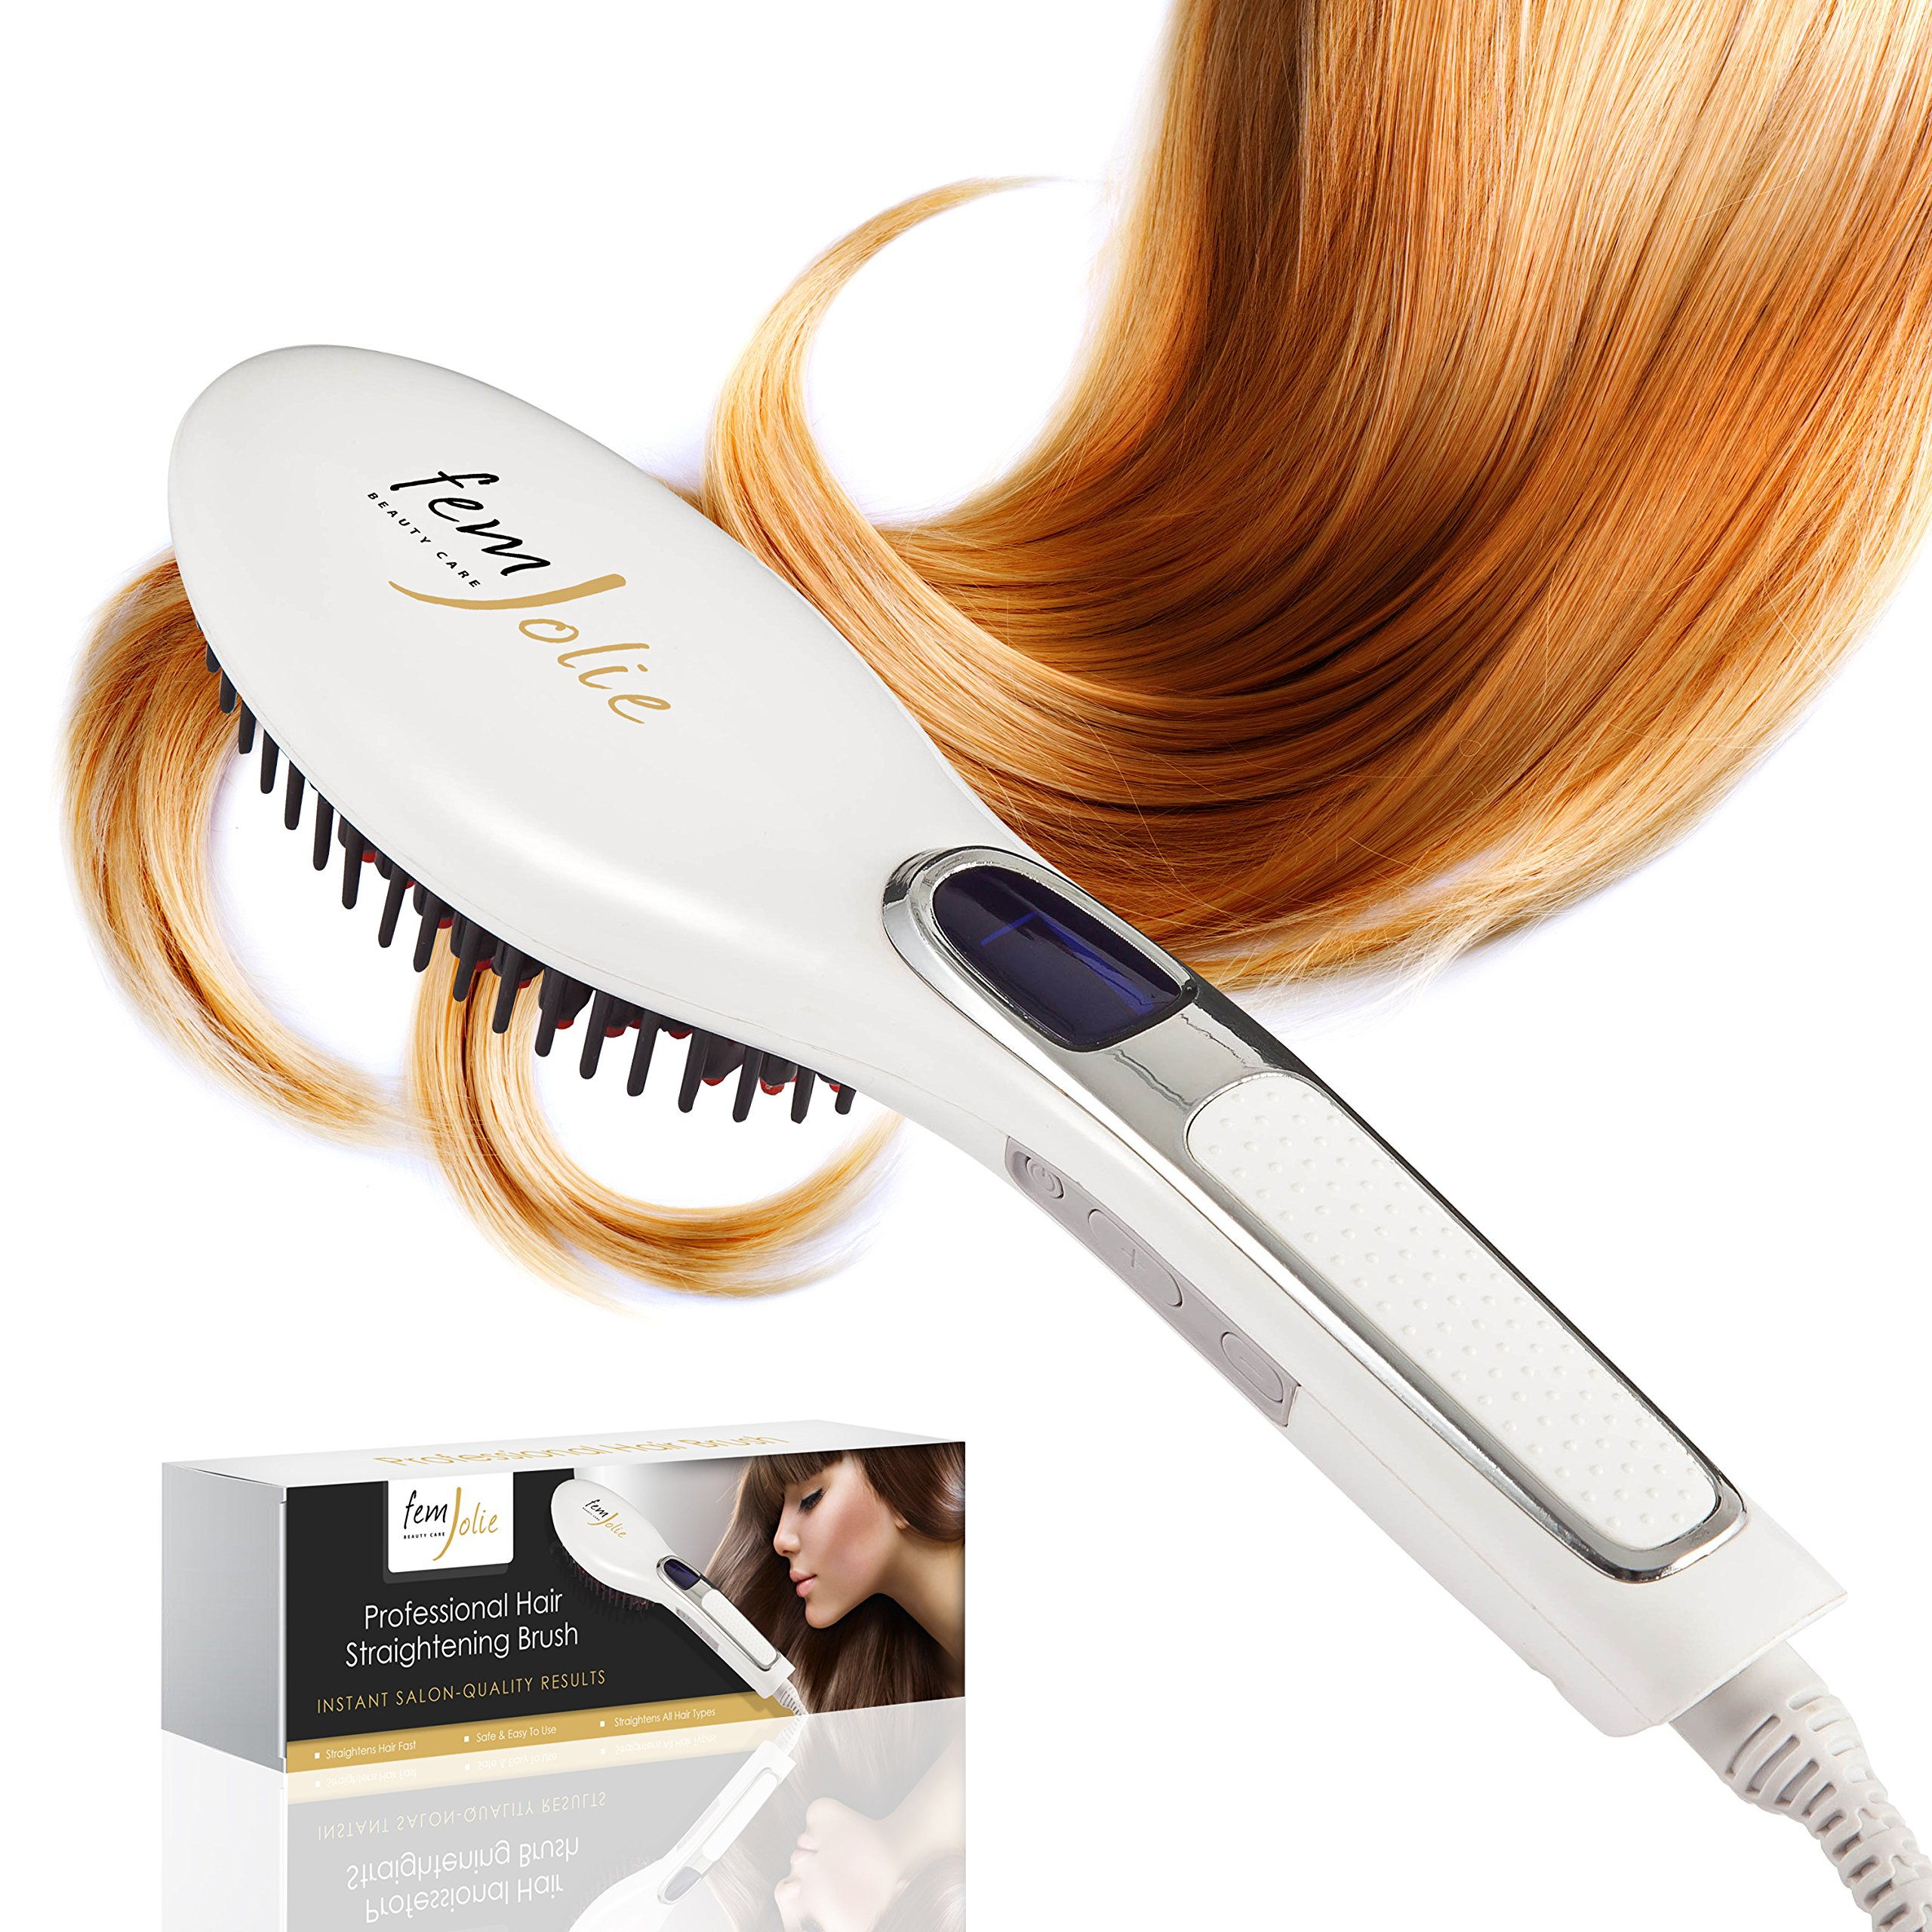 Femjolie straightening brush